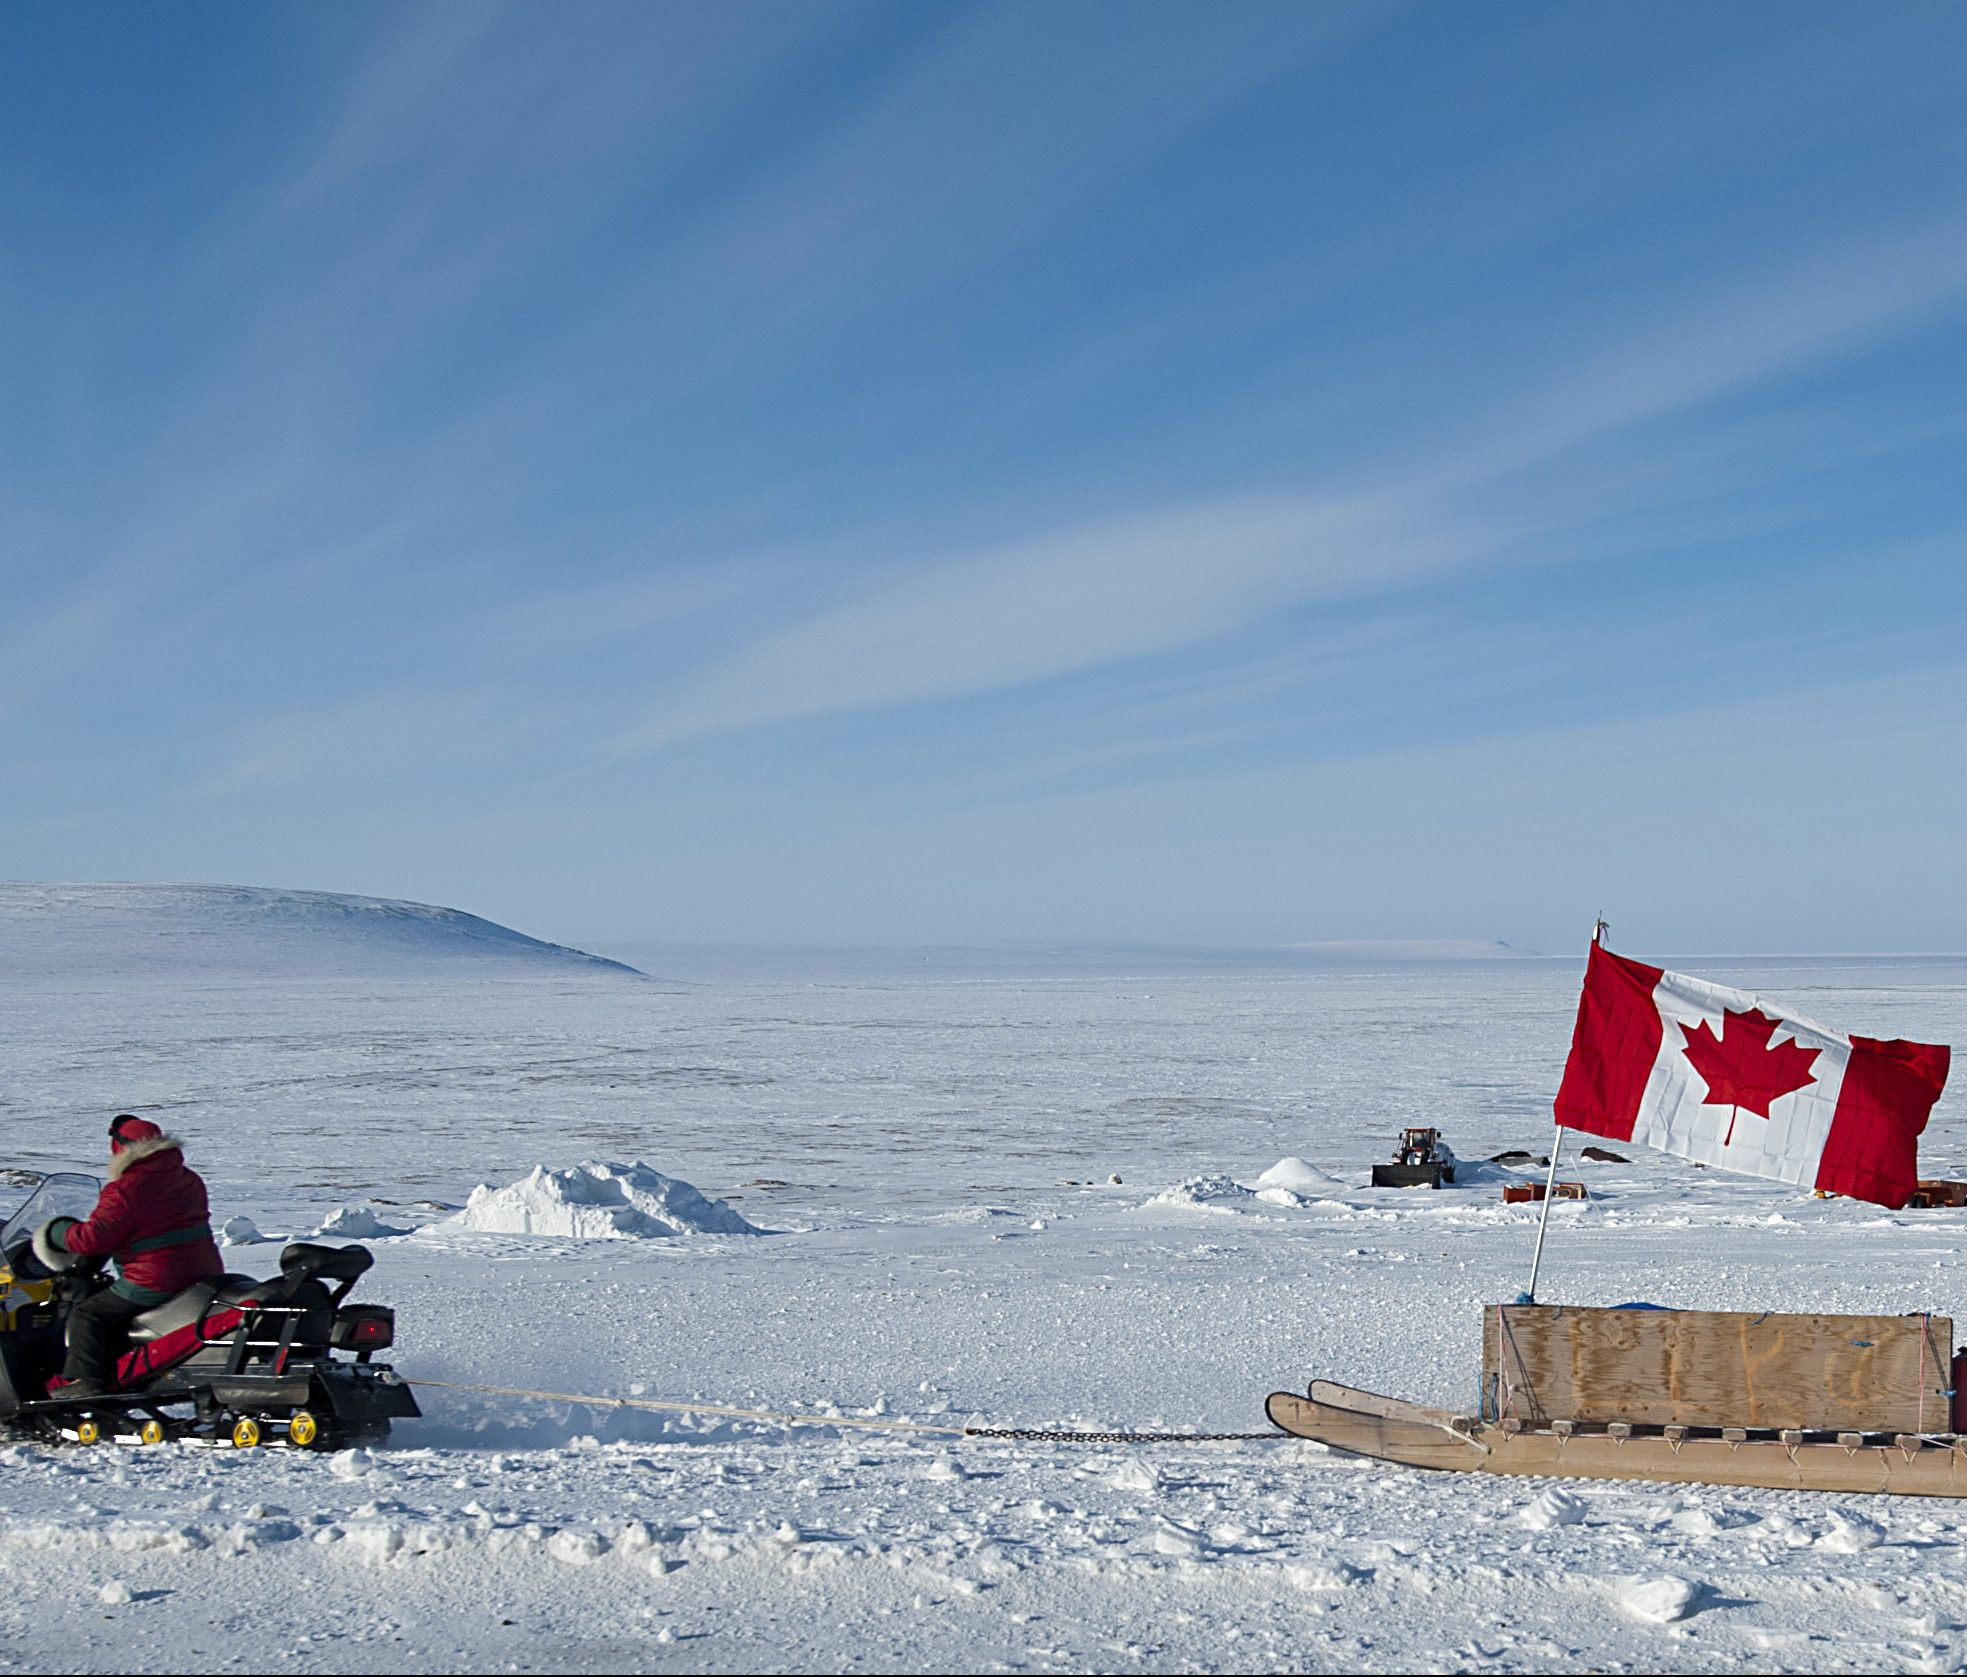 arctic policy for canada tomorrow a review essay The defence policy review will provide the clarity needed to balance priorities, respond to emerging challenges, and invest appropriately in canada's military to help guide discussions, dnd.